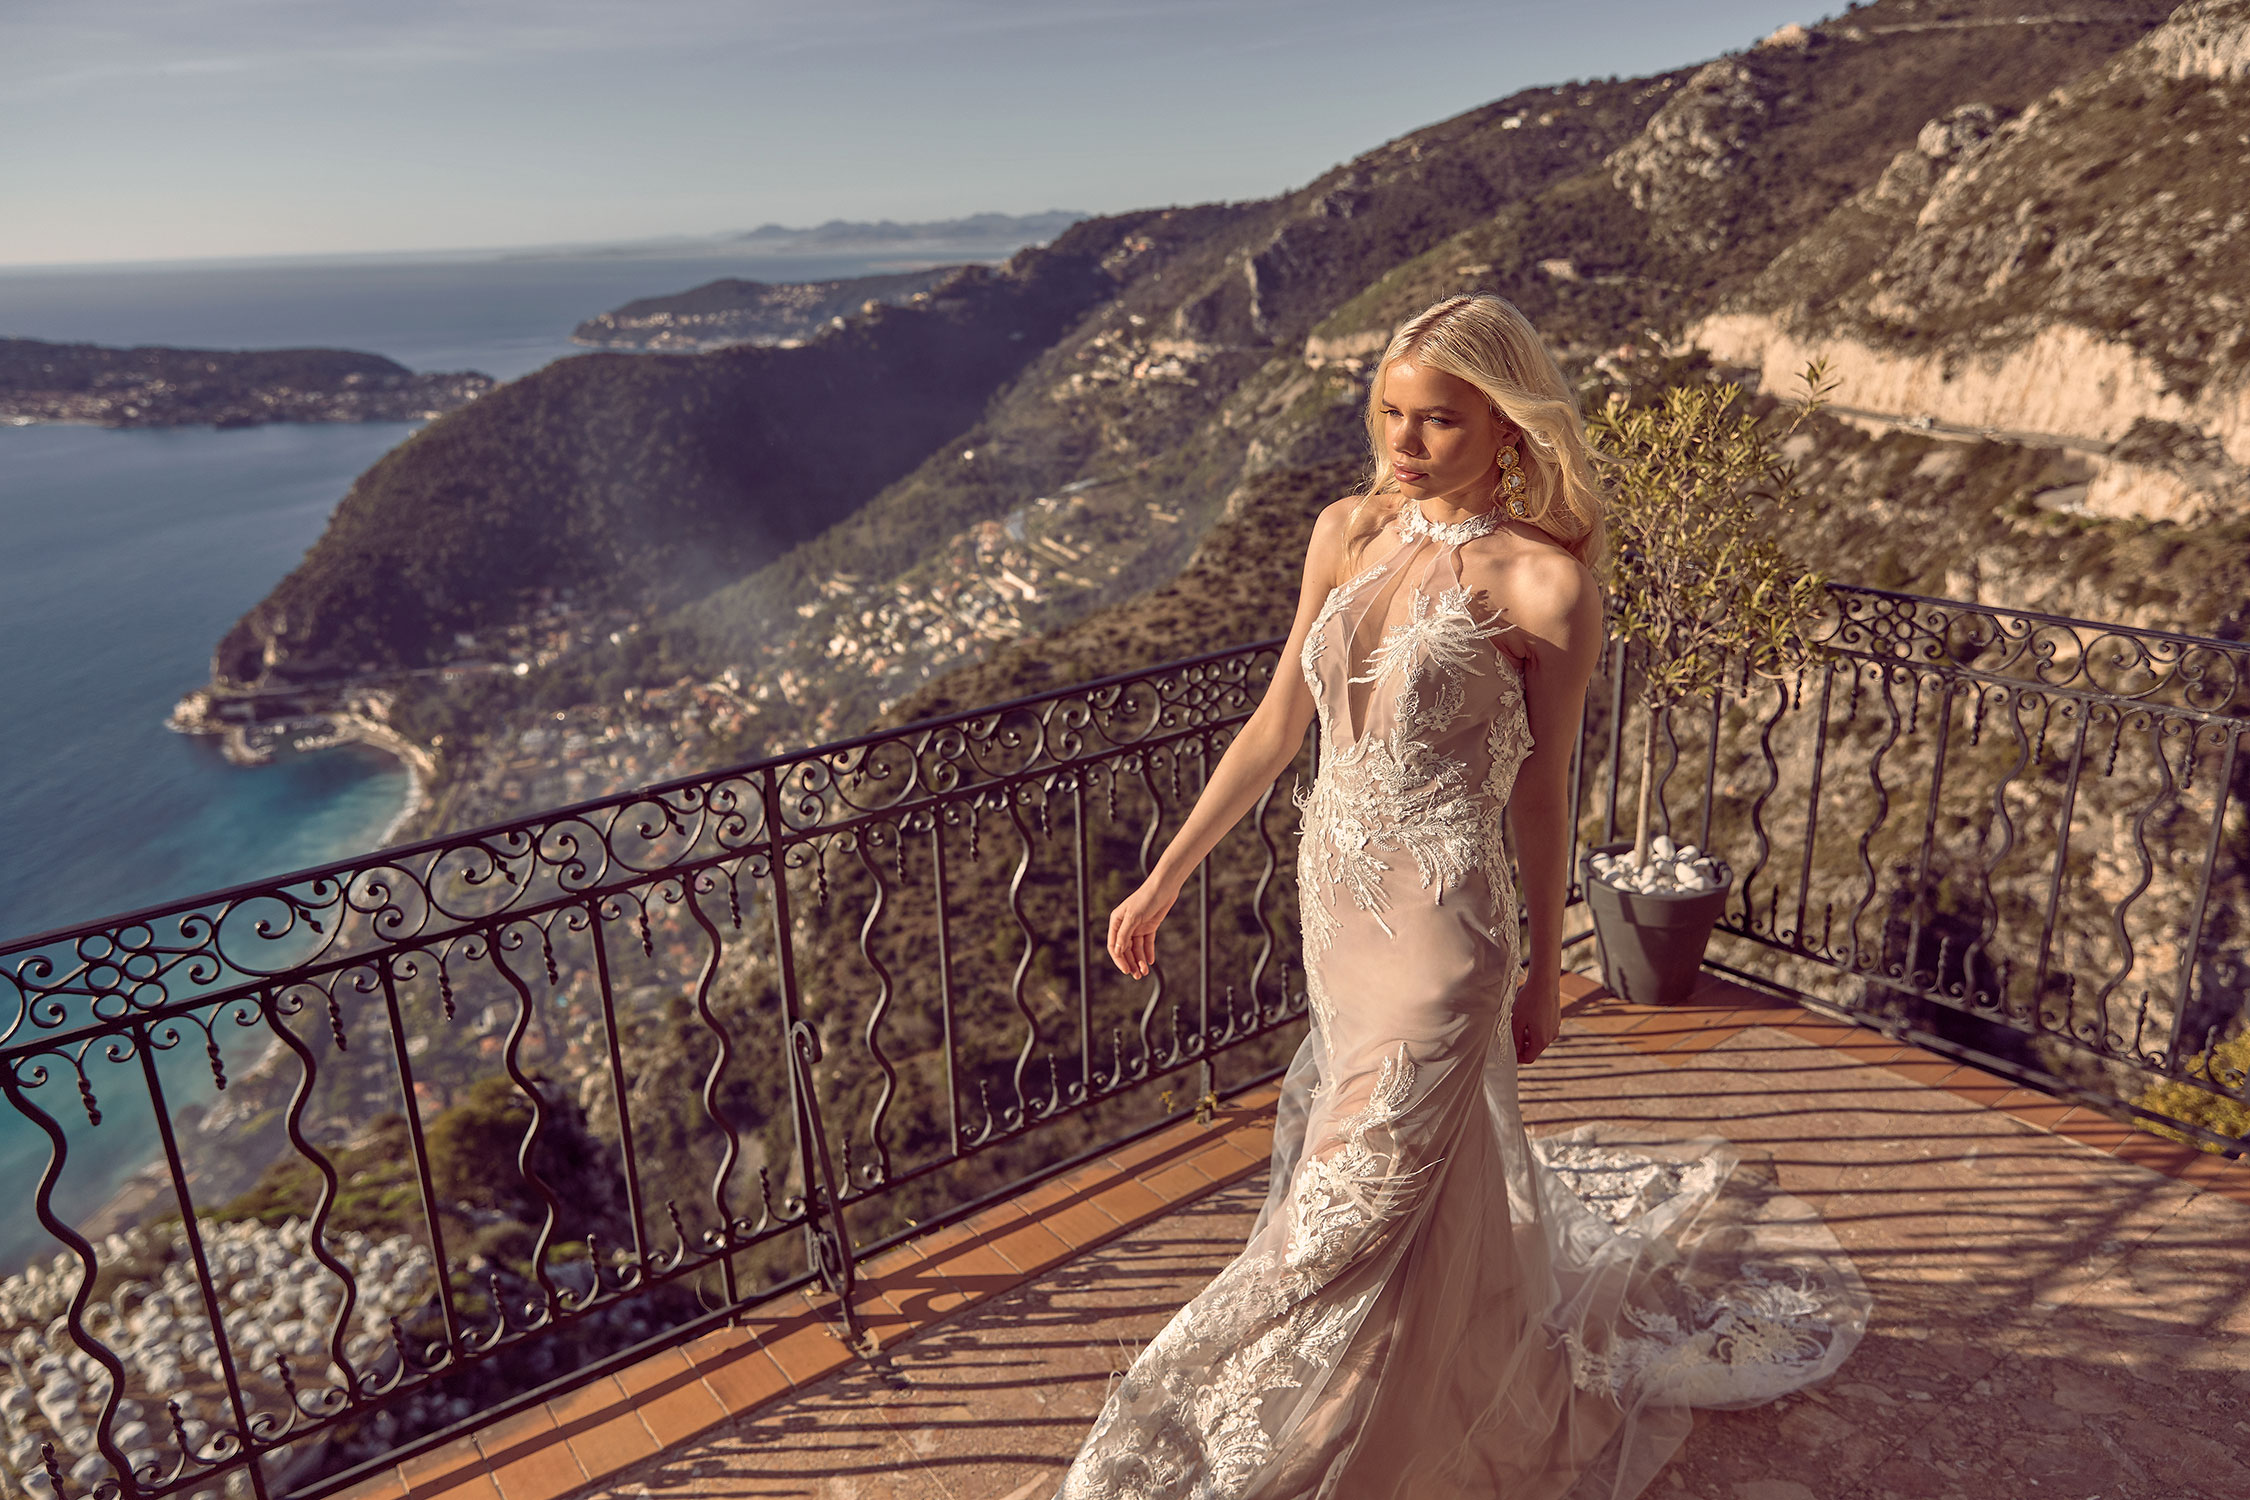 Havana Ml3819 Fitted Tulle And Lace Gown With Plunging Neckline And Halter Neck Design Low Back Feather Details And Front Side Split Wedding Dress Madi Lane Bridal5